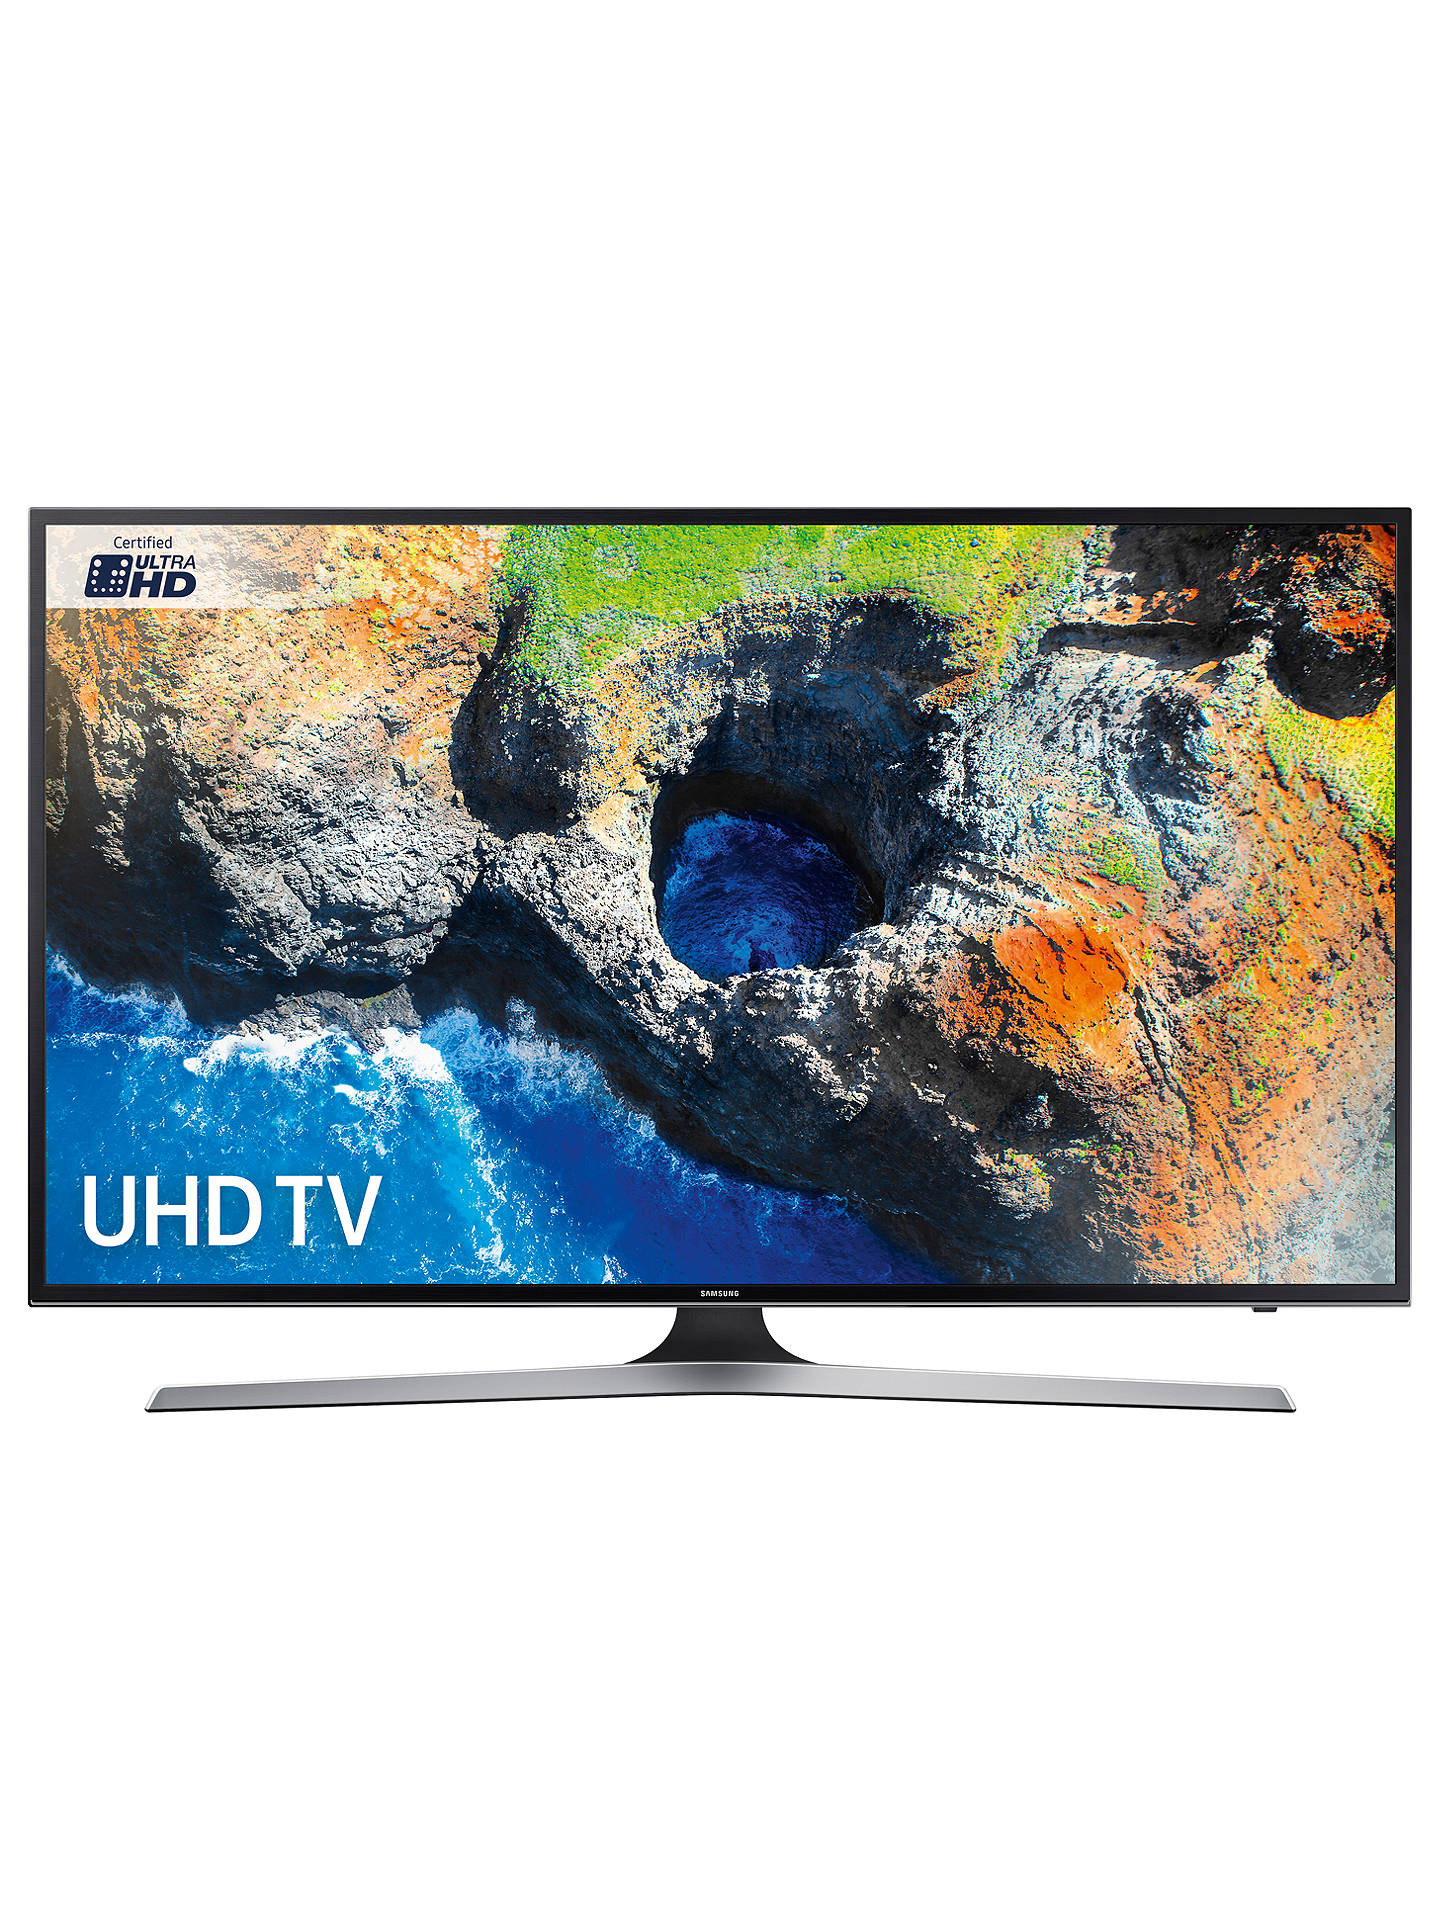 Samsung Ue40mu6120 Hdr 4k Ultra Hd Smart Tv 40 With Tvplus Black